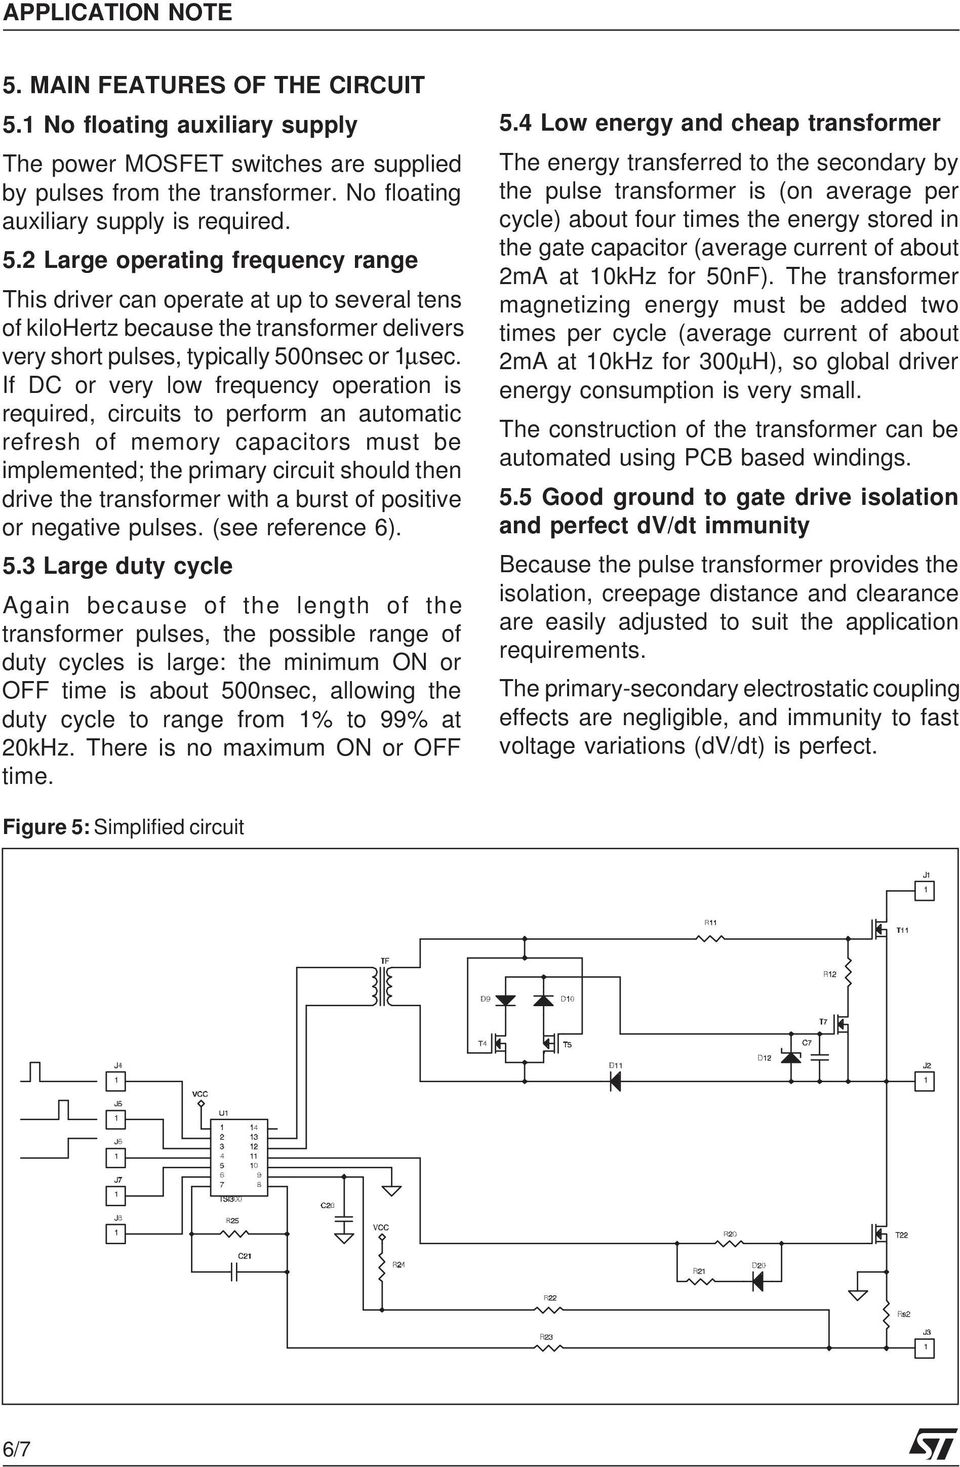 An Isolated Gate Drive For Power Mosfets And Igbts Pdf Output Stage Circuits Pulse Shapes Drivers 2 Large Operating Frequency Range This Driver Can Operate At Up To Several Tens Of Kilohertz